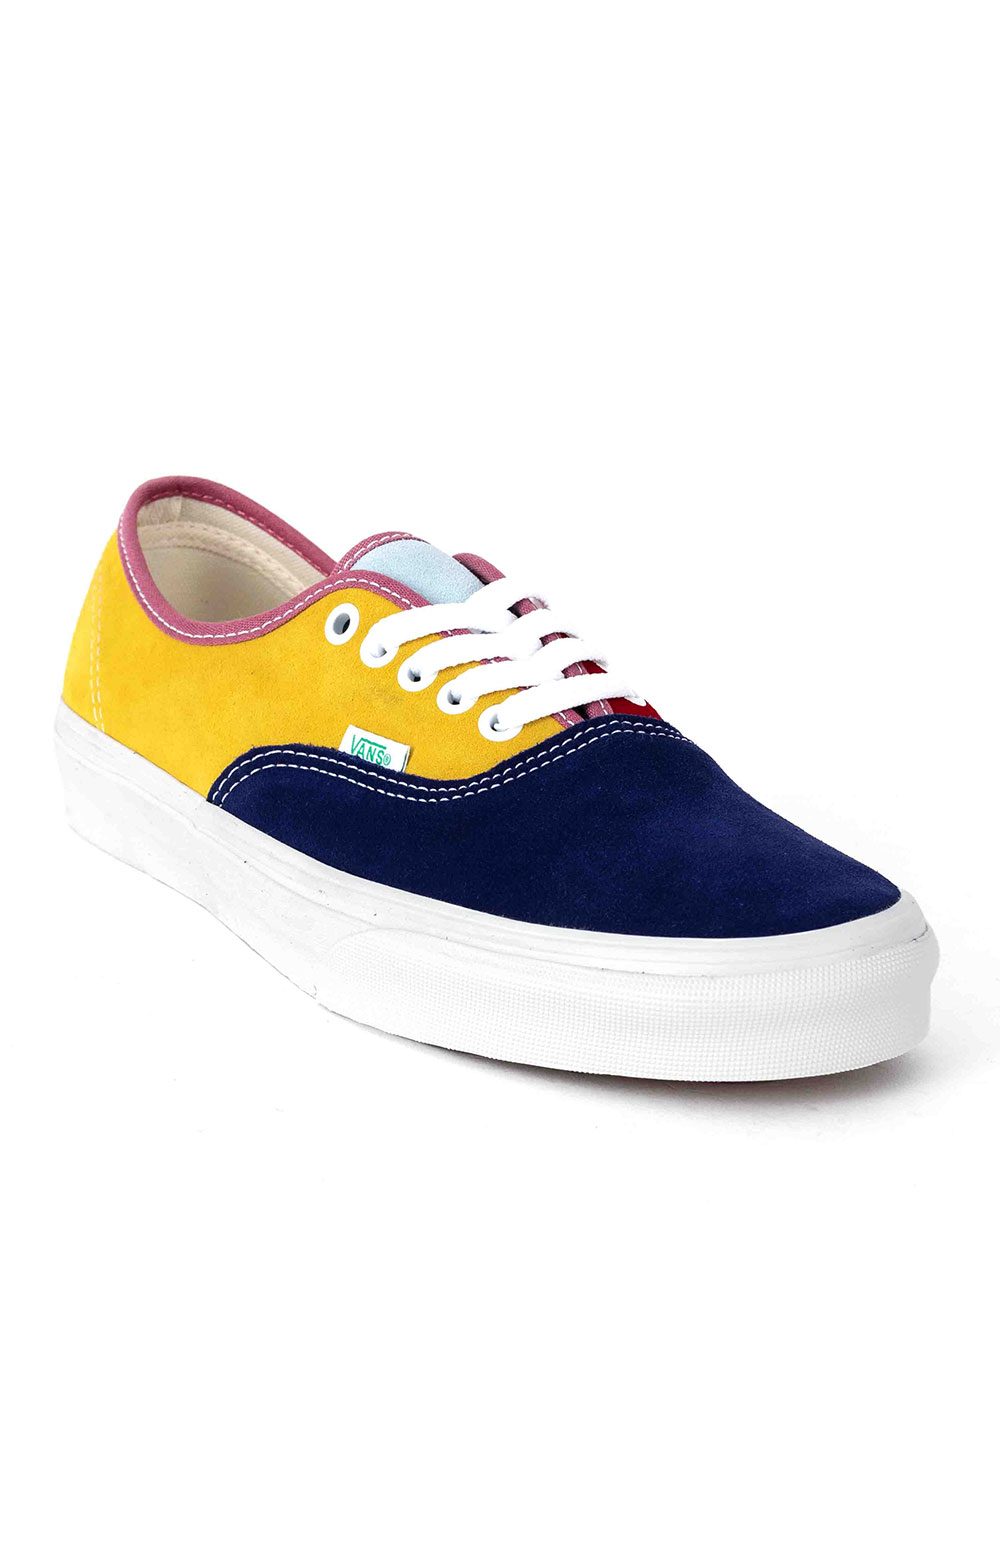 (Z5IWNY) Sunshine Authentic Shoes - Multi/True White  3